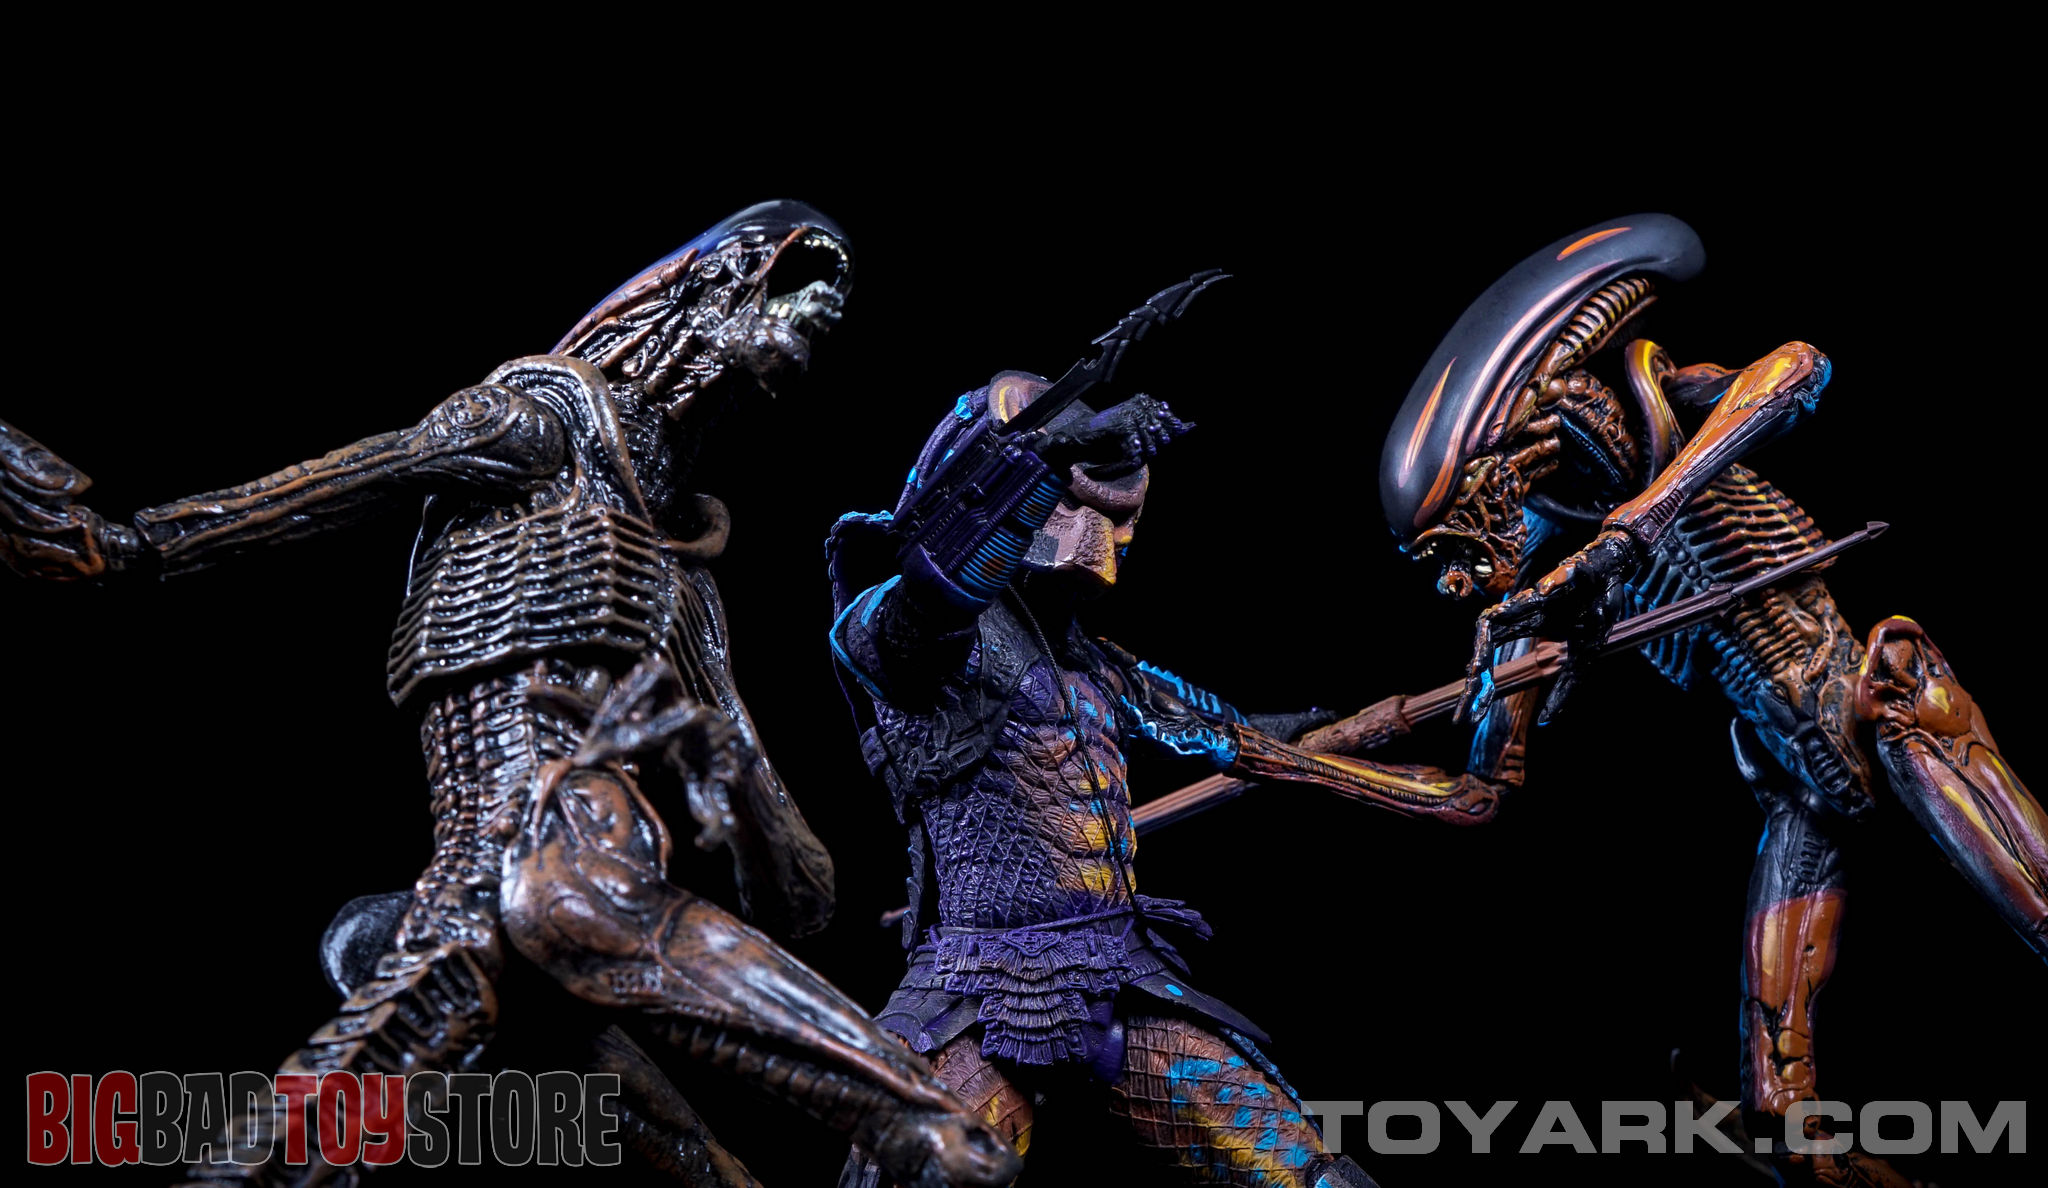 http://news.toyark.com/wp-content/uploads/sites/4/2015/06/NECA-NES-Dog-Alien-052.jpg